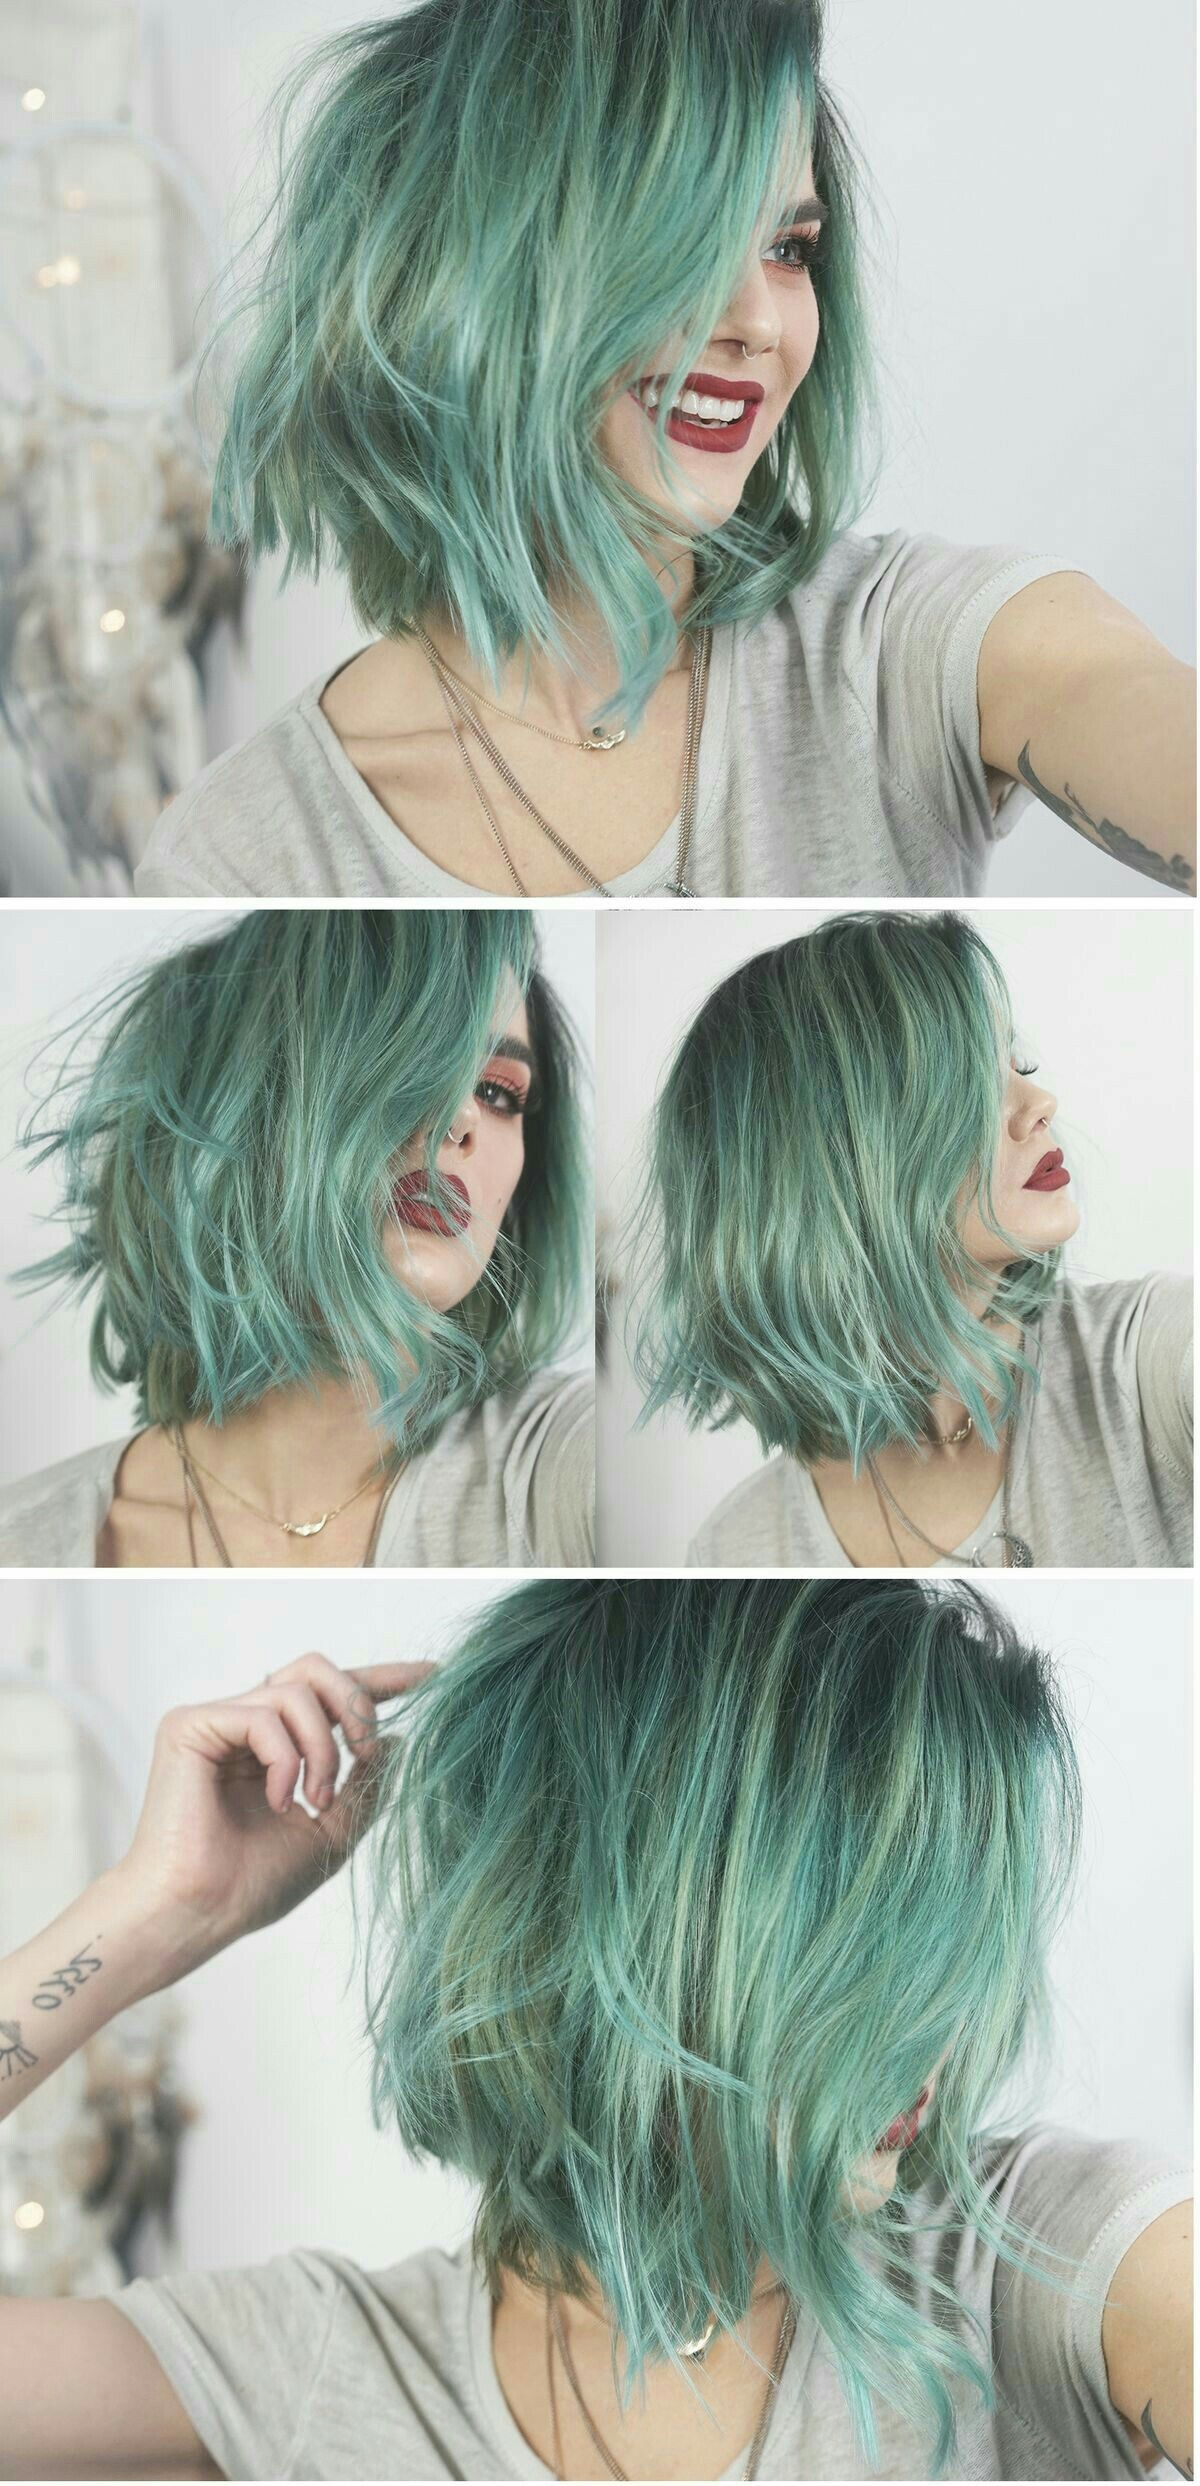 Pin by lauren kaatz on beauty and such pinterest hair coloring